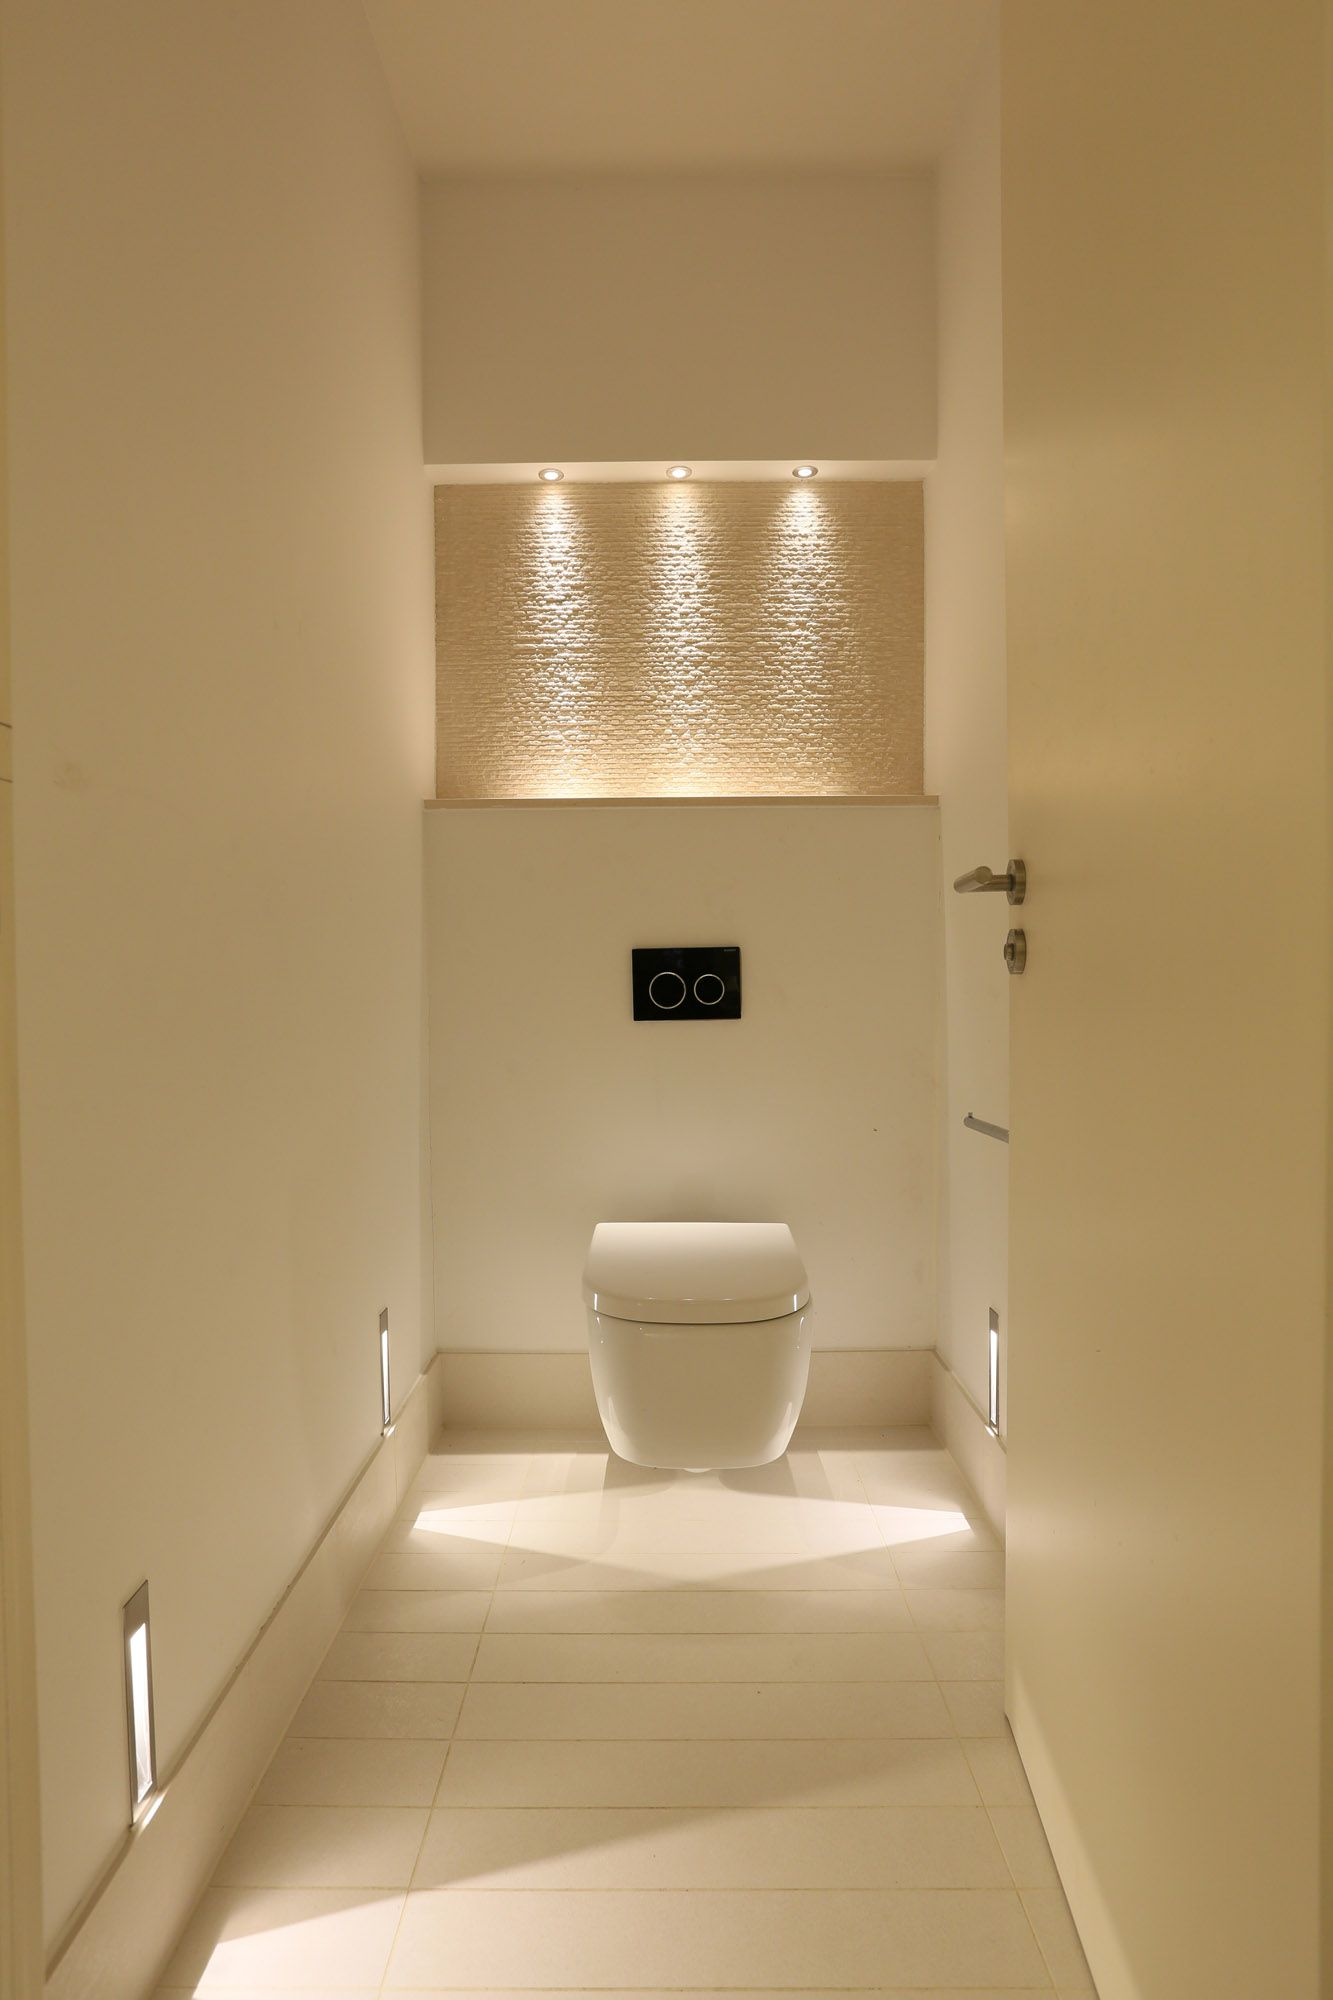 Licht Idee Licht Idee Wc Beneden Bathroom Bathroom Lighting Guest Toilet